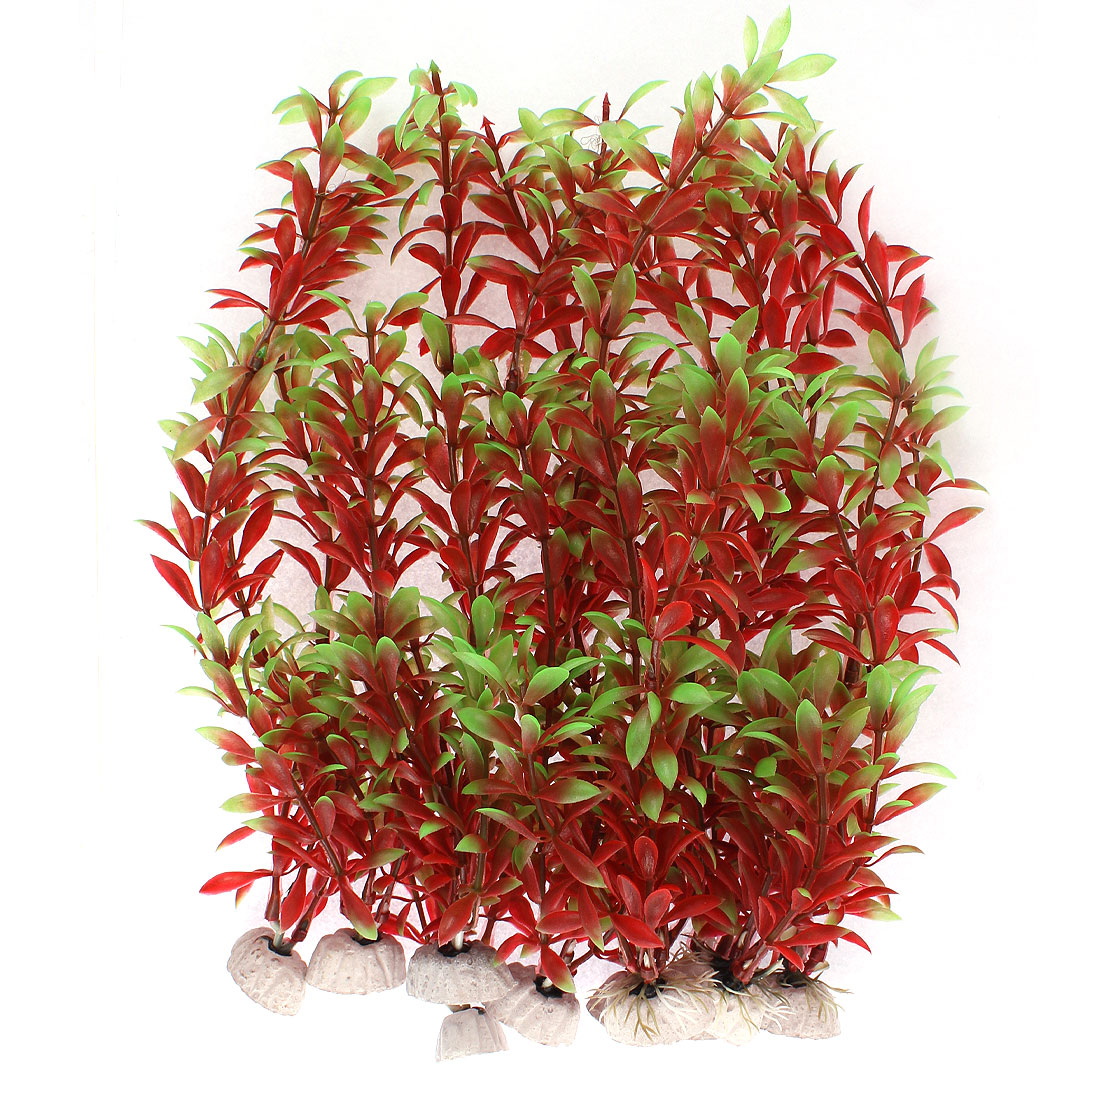 Aquarium Plastic Artificial Underwater Plants Grass Landscaping Decor 10pcs